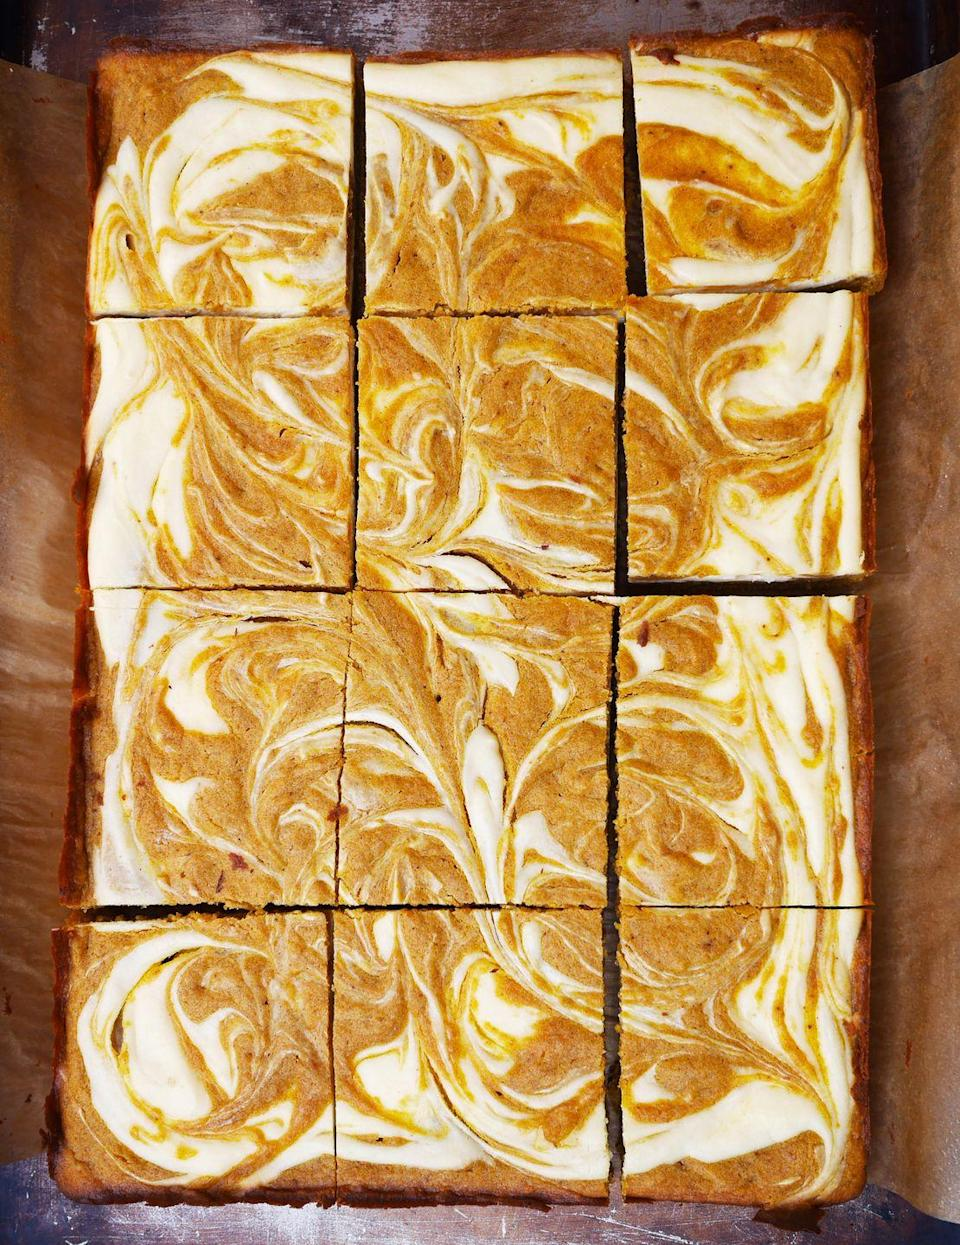 """<p>The pumpkin cheesecake swirls on these blondies are mesmerizing.</p><p>Get the recipe from <a href=""""https://www.delish.com/cooking/recipe-ideas/recipes/a48964/pumpkin-spice-blondies-with-cheesecake-swirl-recipe/"""" rel=""""nofollow noopener"""" target=""""_blank"""" data-ylk=""""slk:Delish"""" class=""""link rapid-noclick-resp"""">Delish</a>.</p>"""